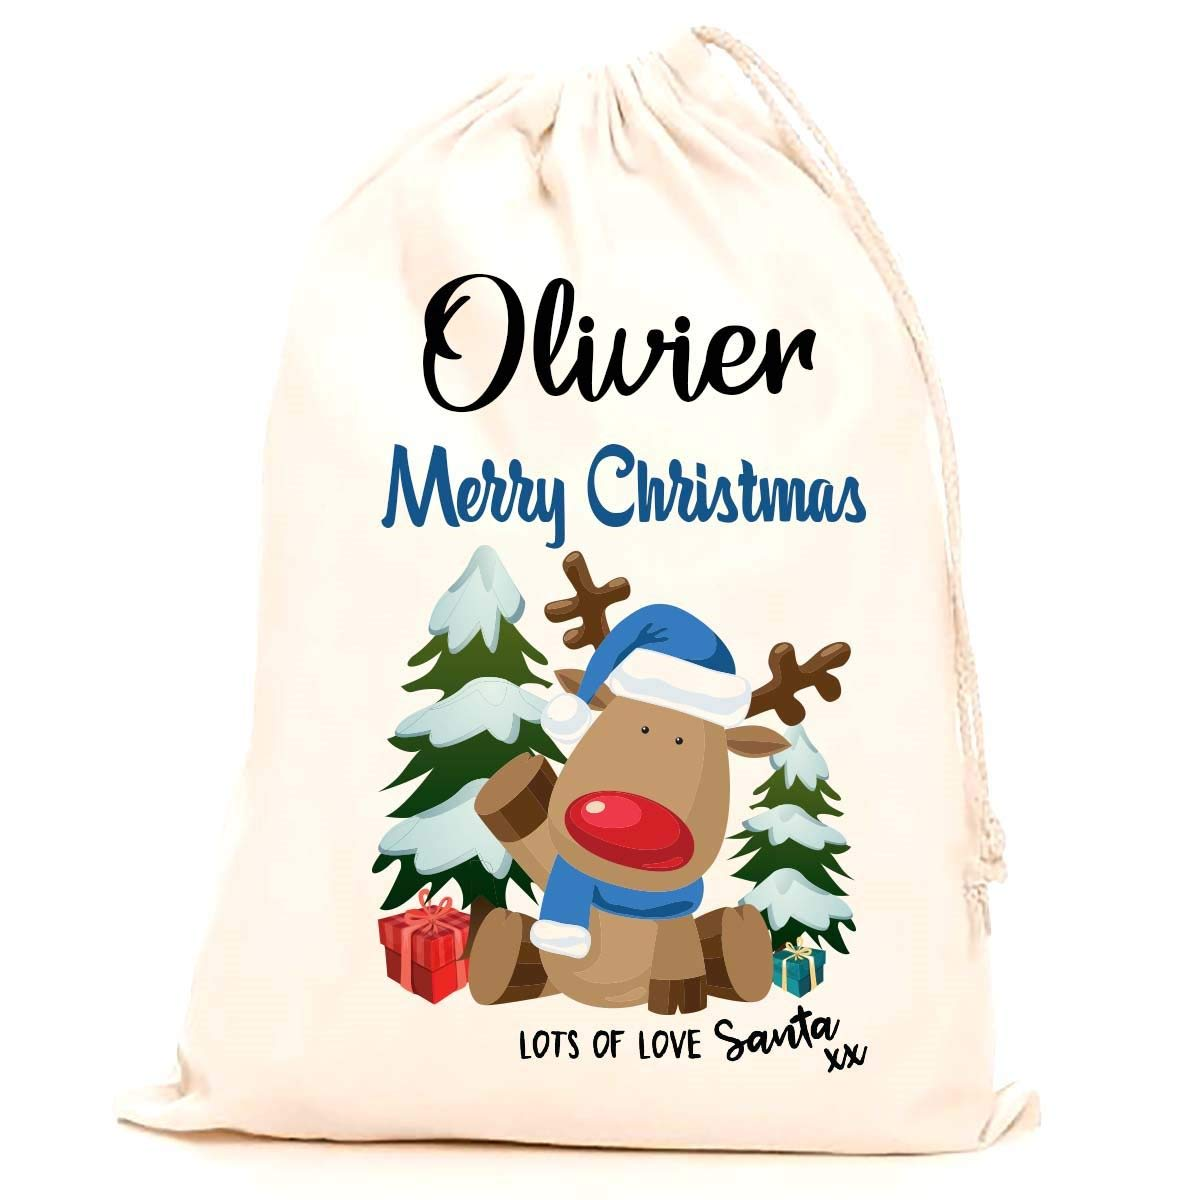 Treat Me Suite Olivier personalised name Christmas santa sack, stocking printed with a blue reindeer (75x50cm) 100% Cotton Large. Children, Kids, making it the perfect keepsake xmas gift/present. CS Printing Limited